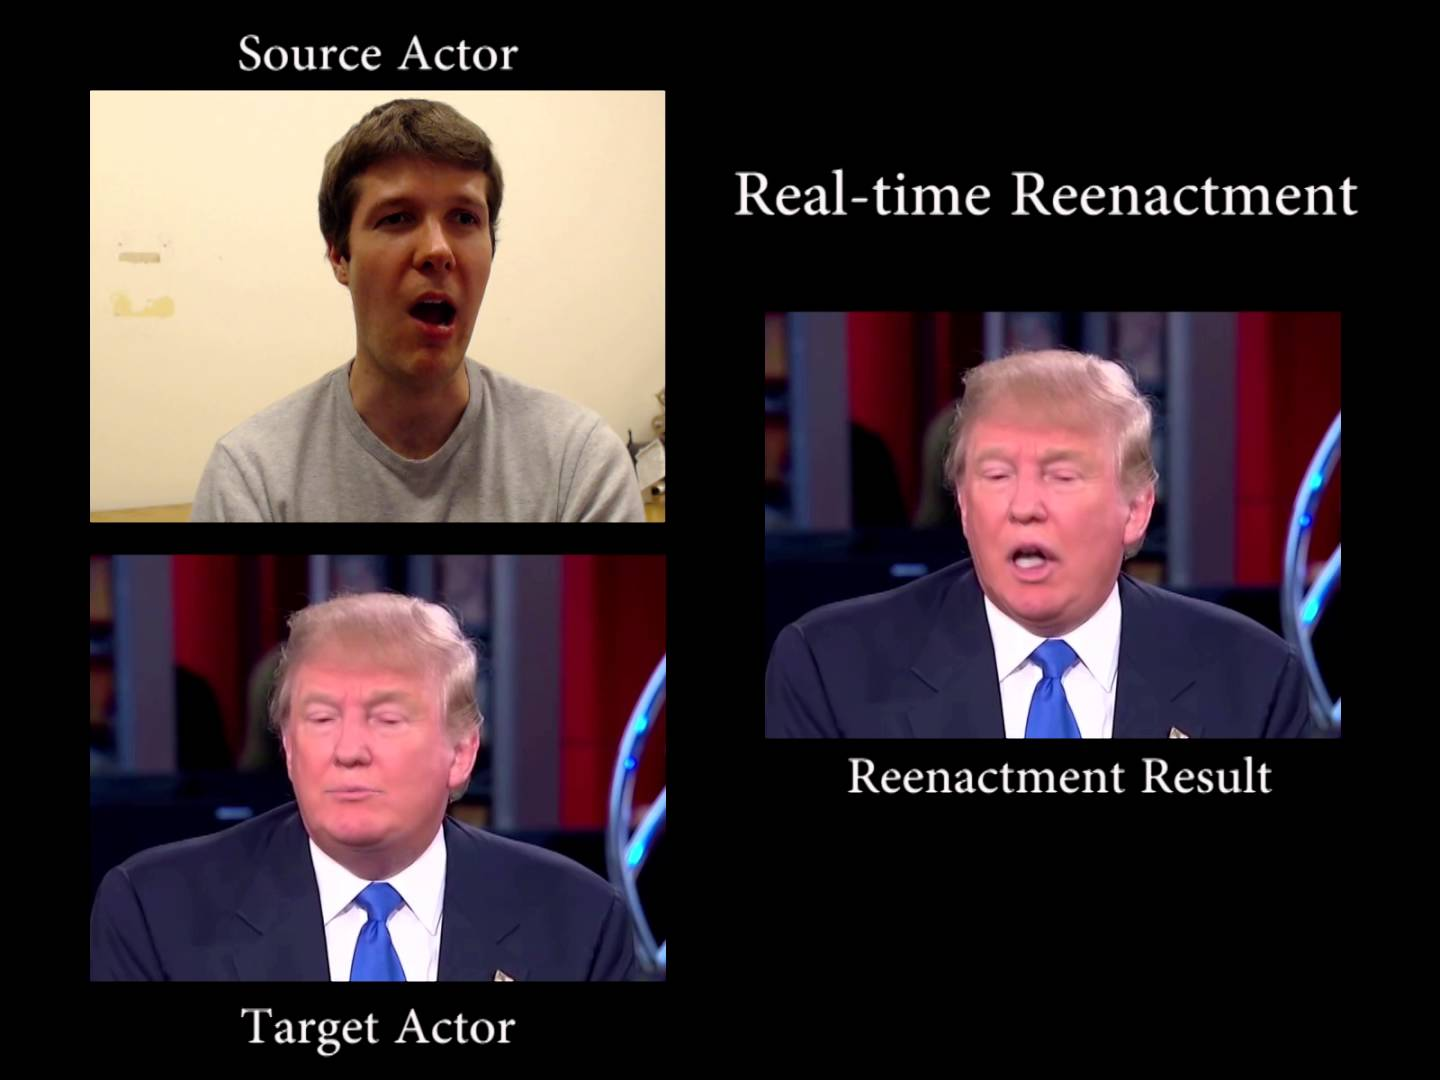 Face2Face: Real-time Face Capture and Reenactment